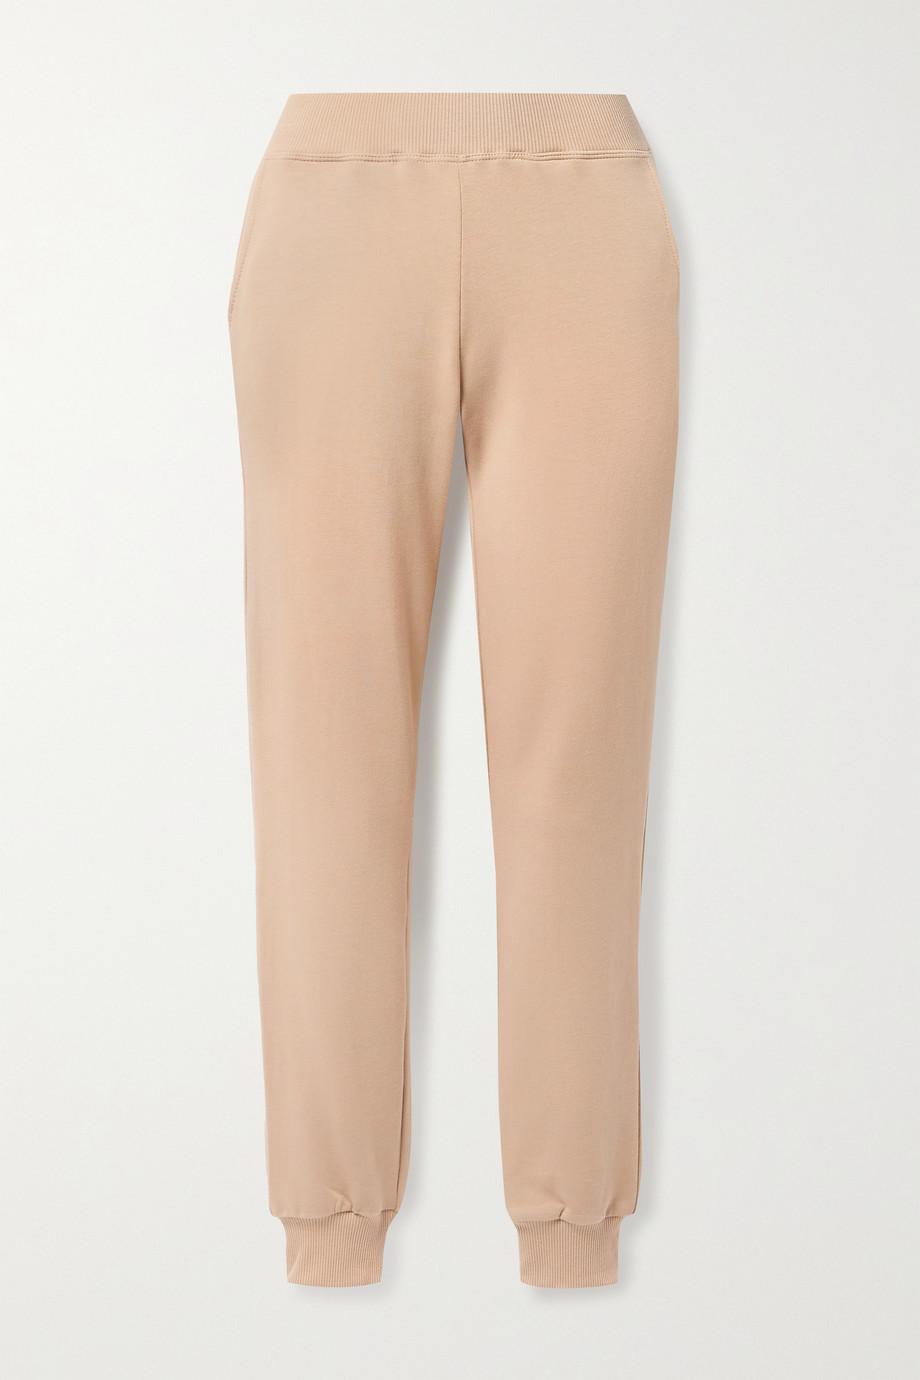 L'Agence Moss stretch cotton and modal-blend jersey track pants